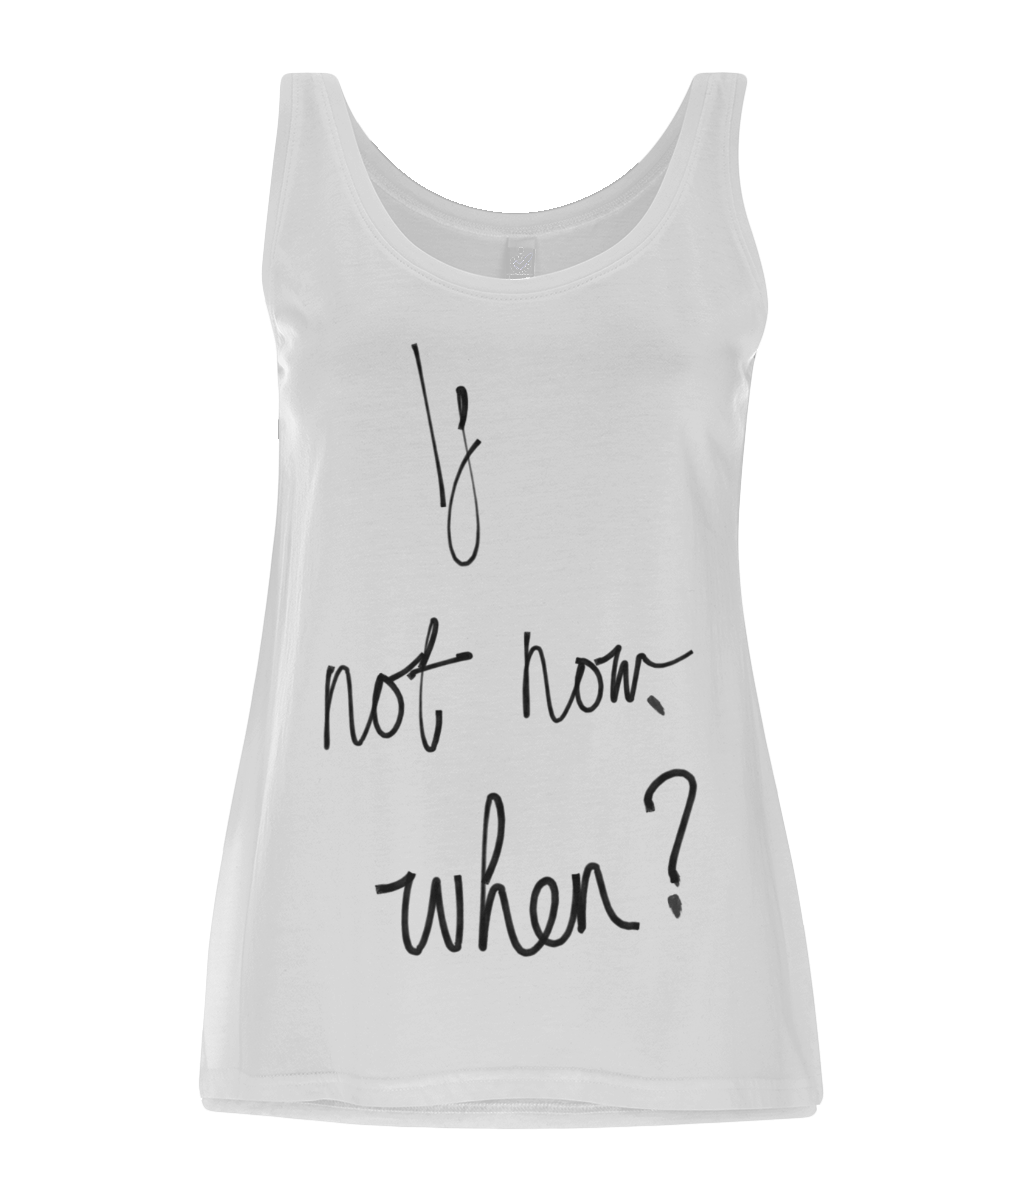 If Not Now When Print Women's Vest - MOTIVATEE